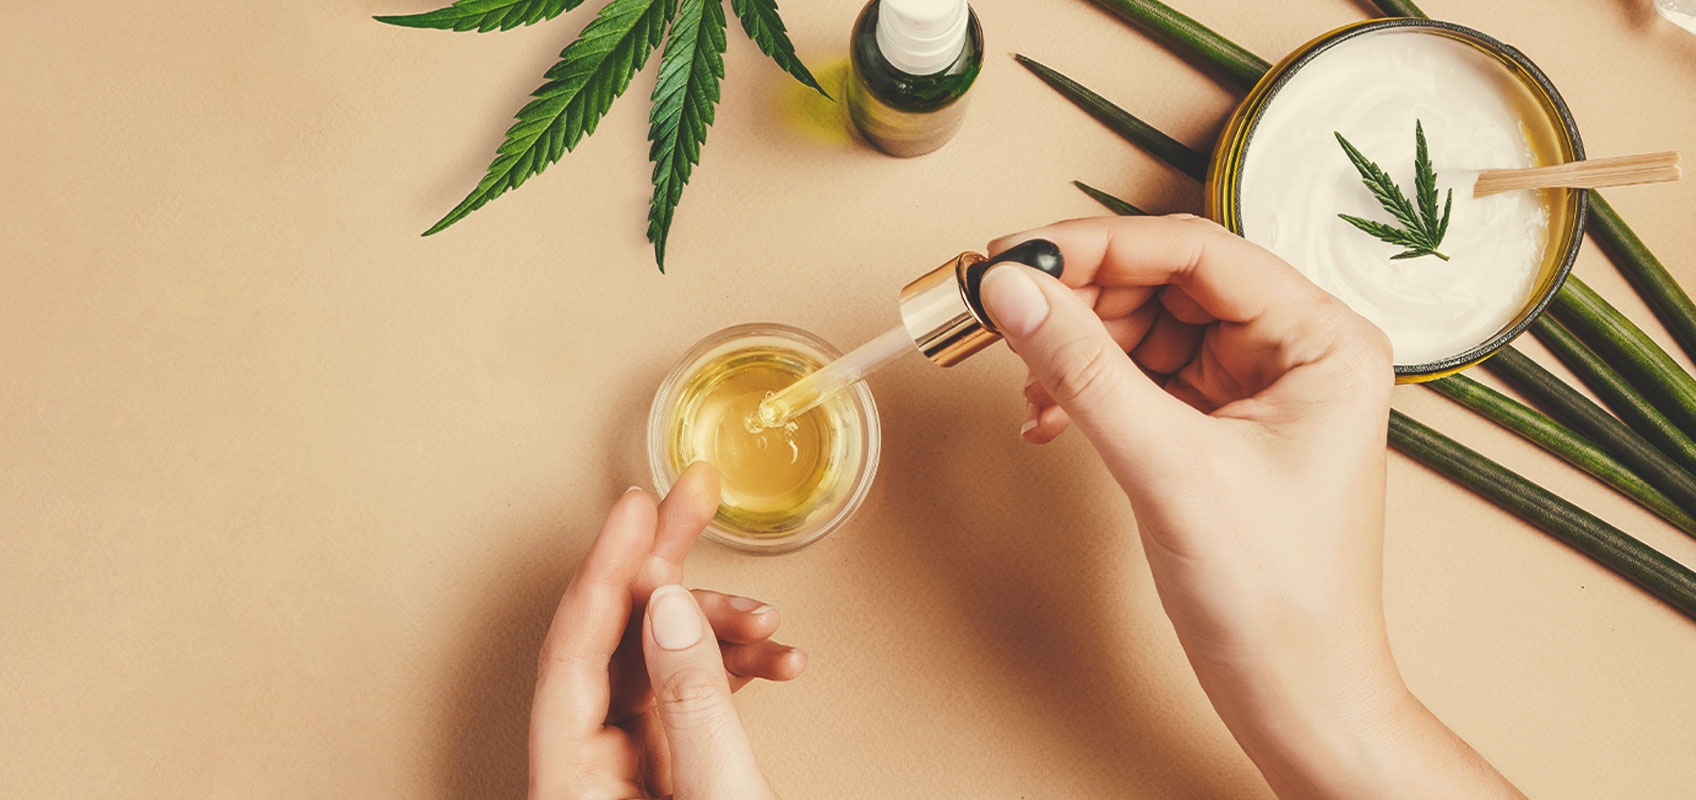 How To Make CBD Oil From Medical Cannabis Seeds